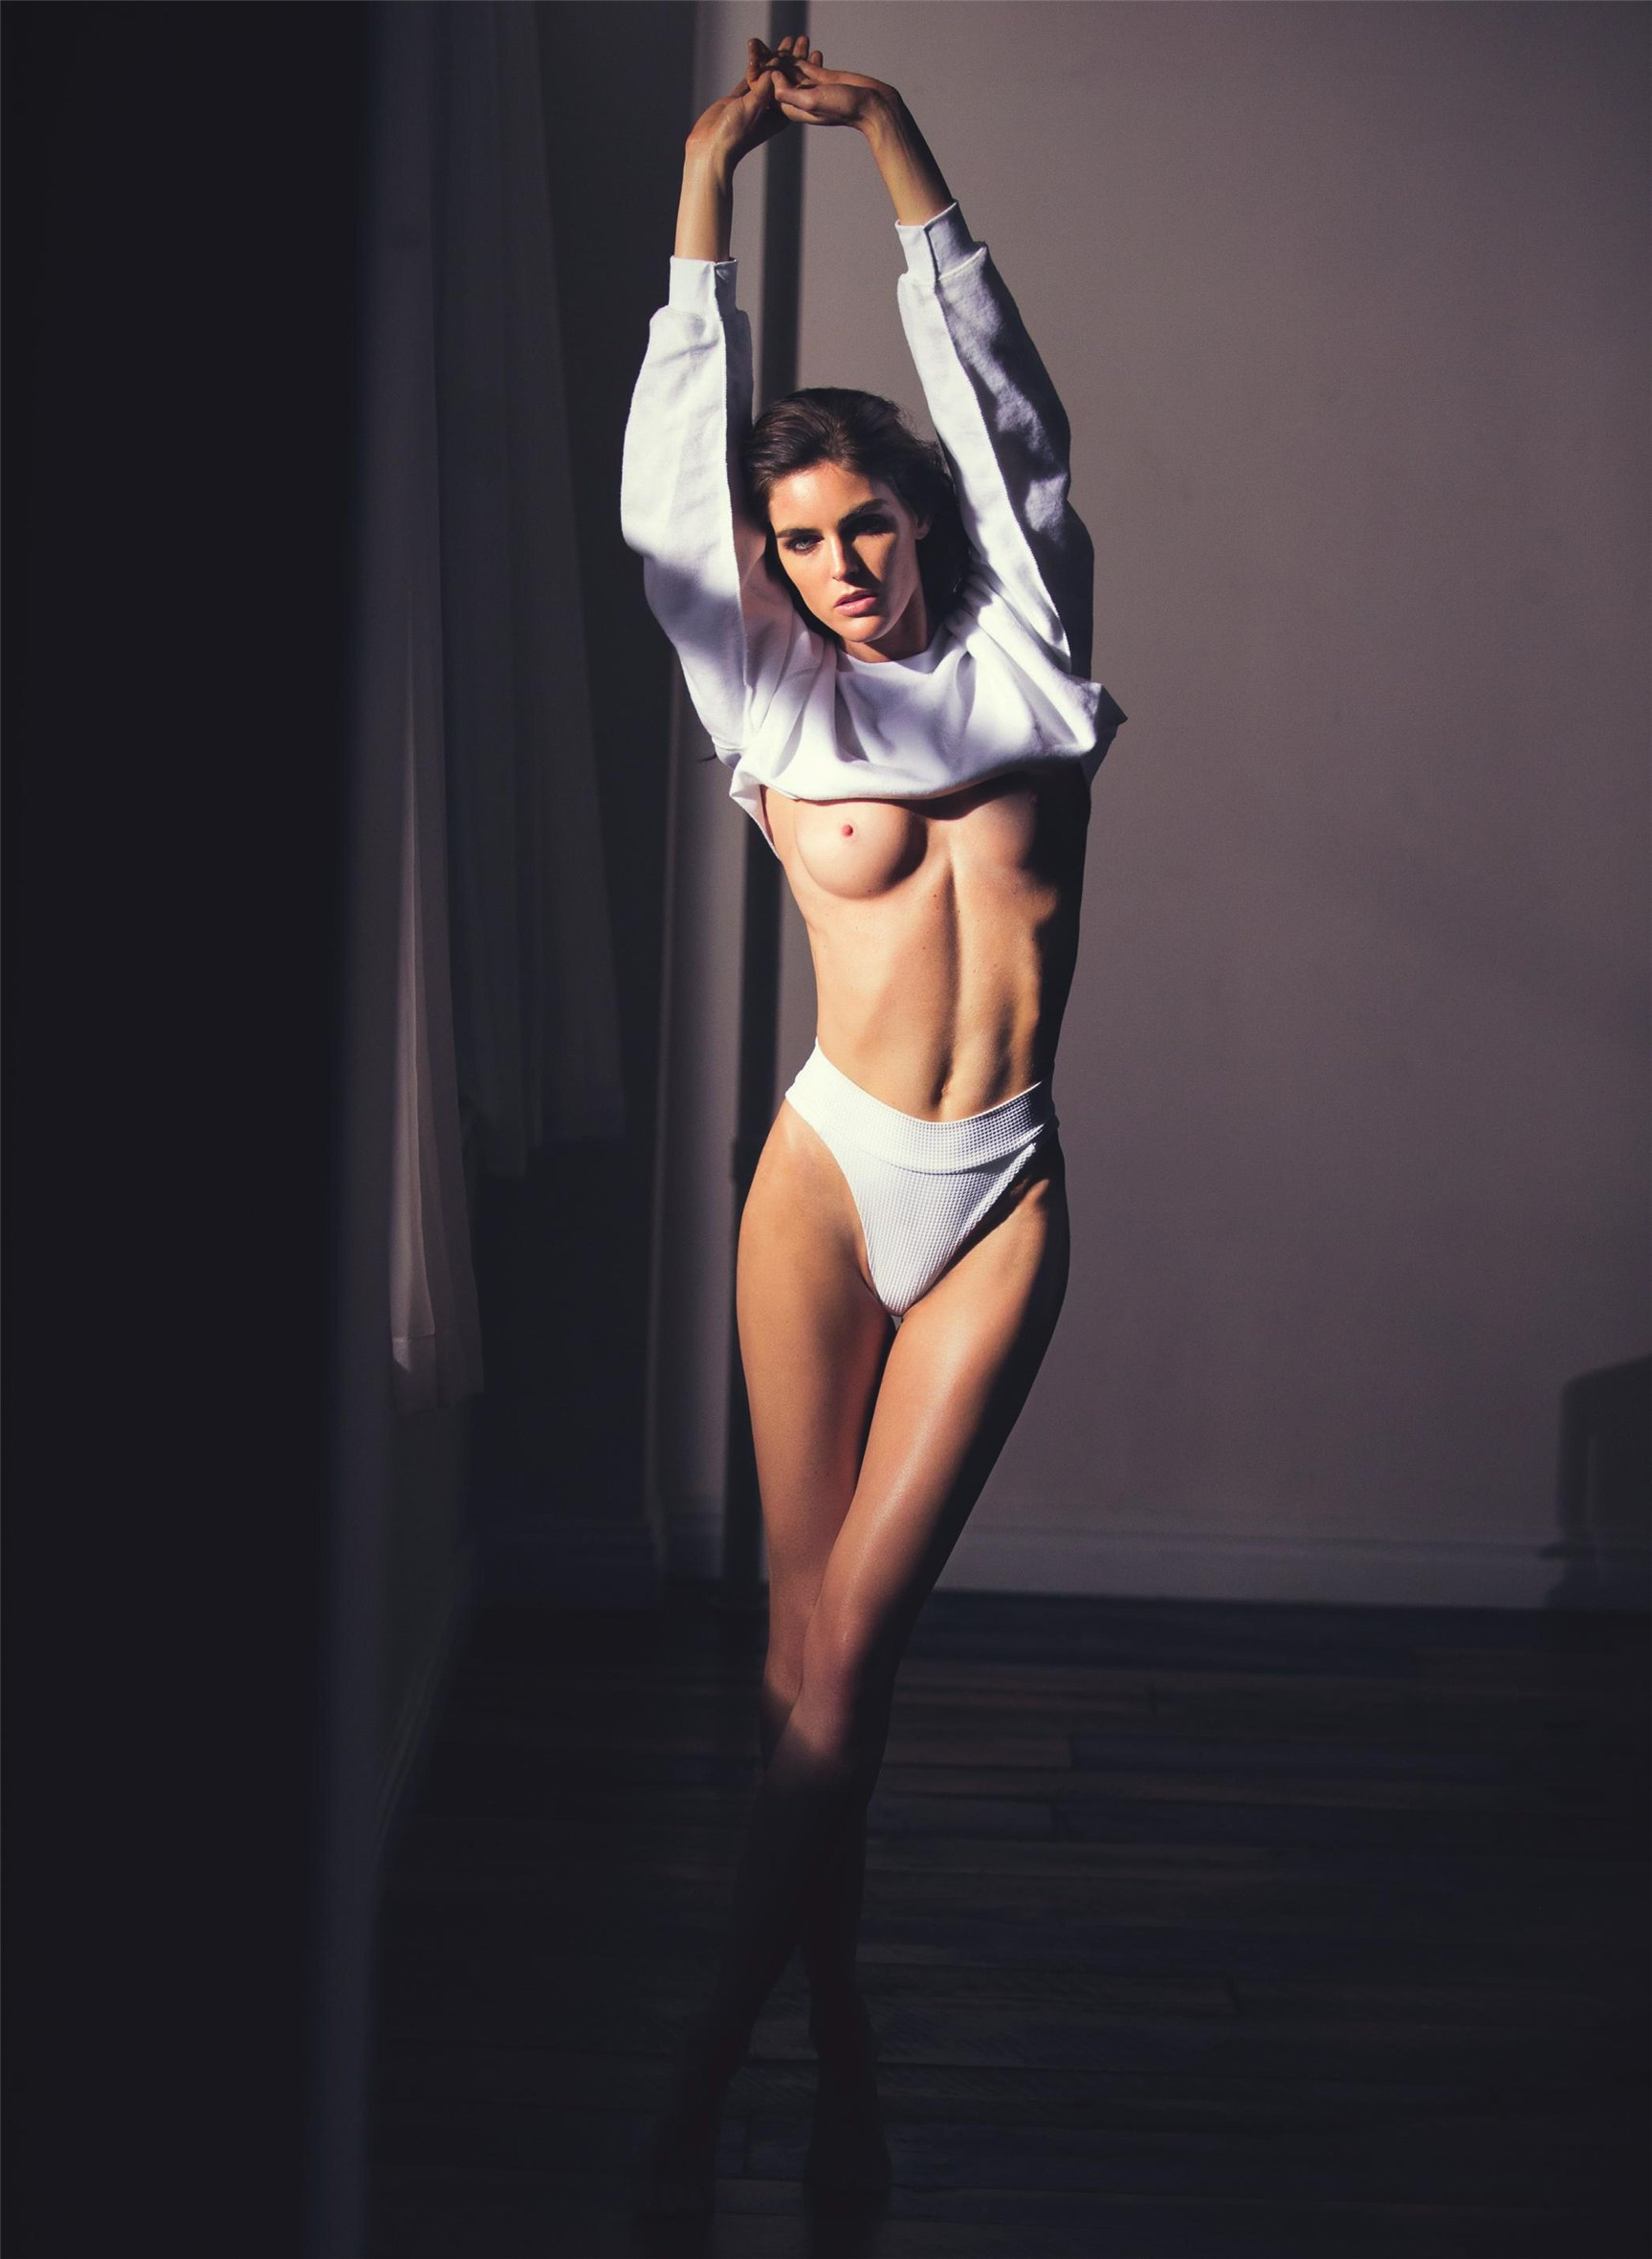 Хилари Рода / Hilary Rhoda by David Bellemere - Lui december 2016 / january 2017